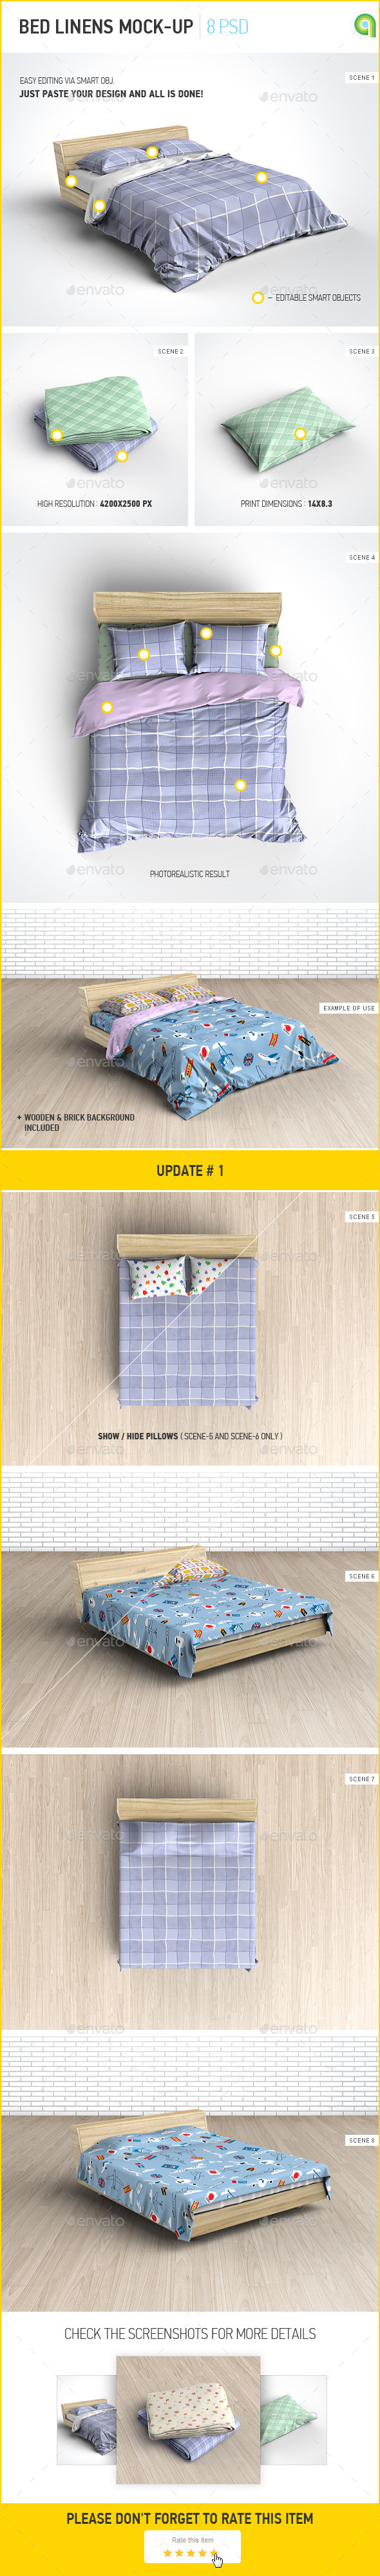 Bed Linens Mock-Up / Bedding Set Template - Miscellaneous Product Mock-Ups